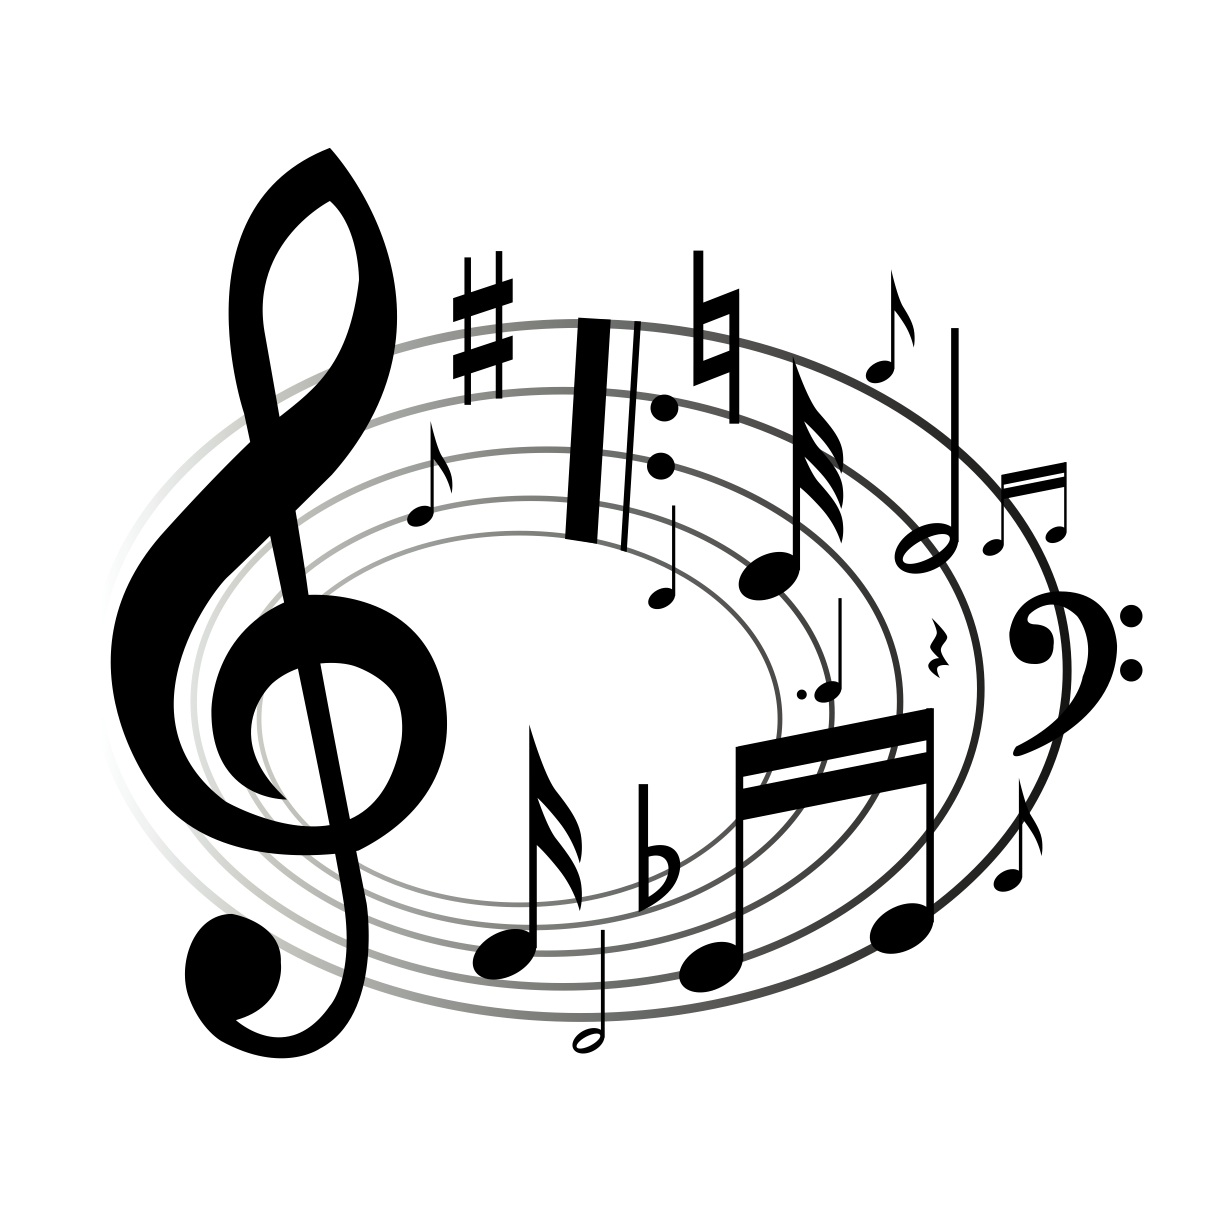 Song notes clipart svg library download Free Classical Music Clipart, Download Free Clip Art, Free Clip Art ... svg library download